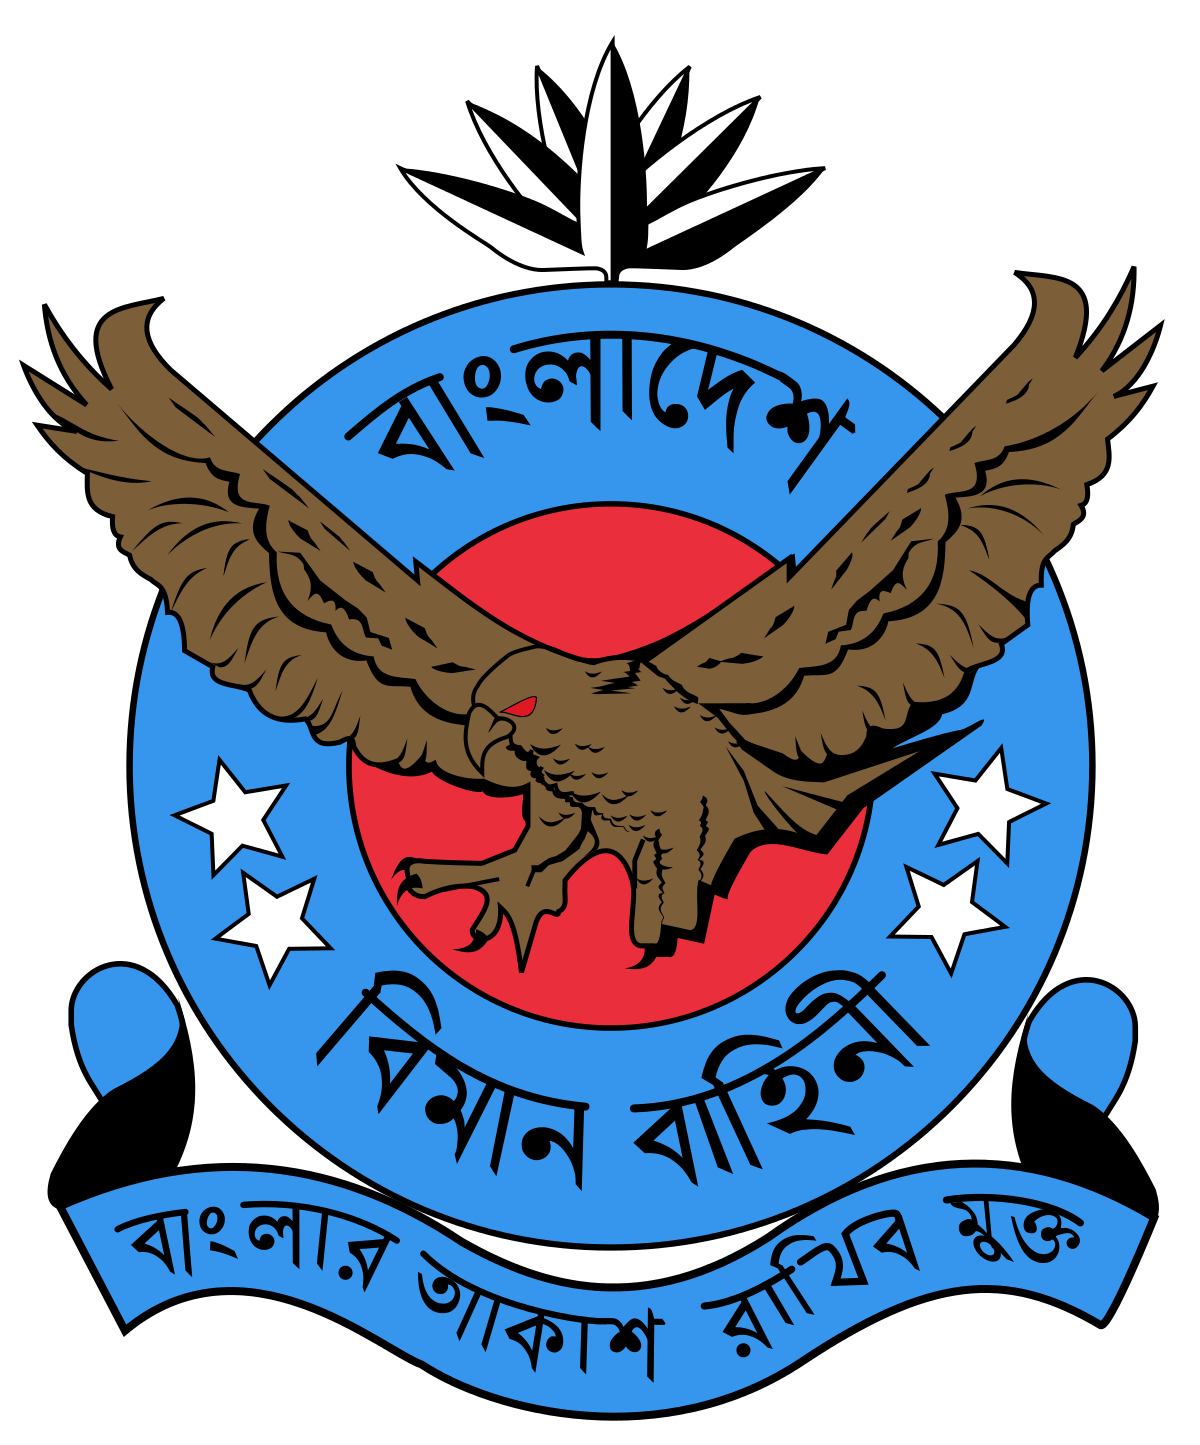 Air force captain png. Bangladesh wikipedia